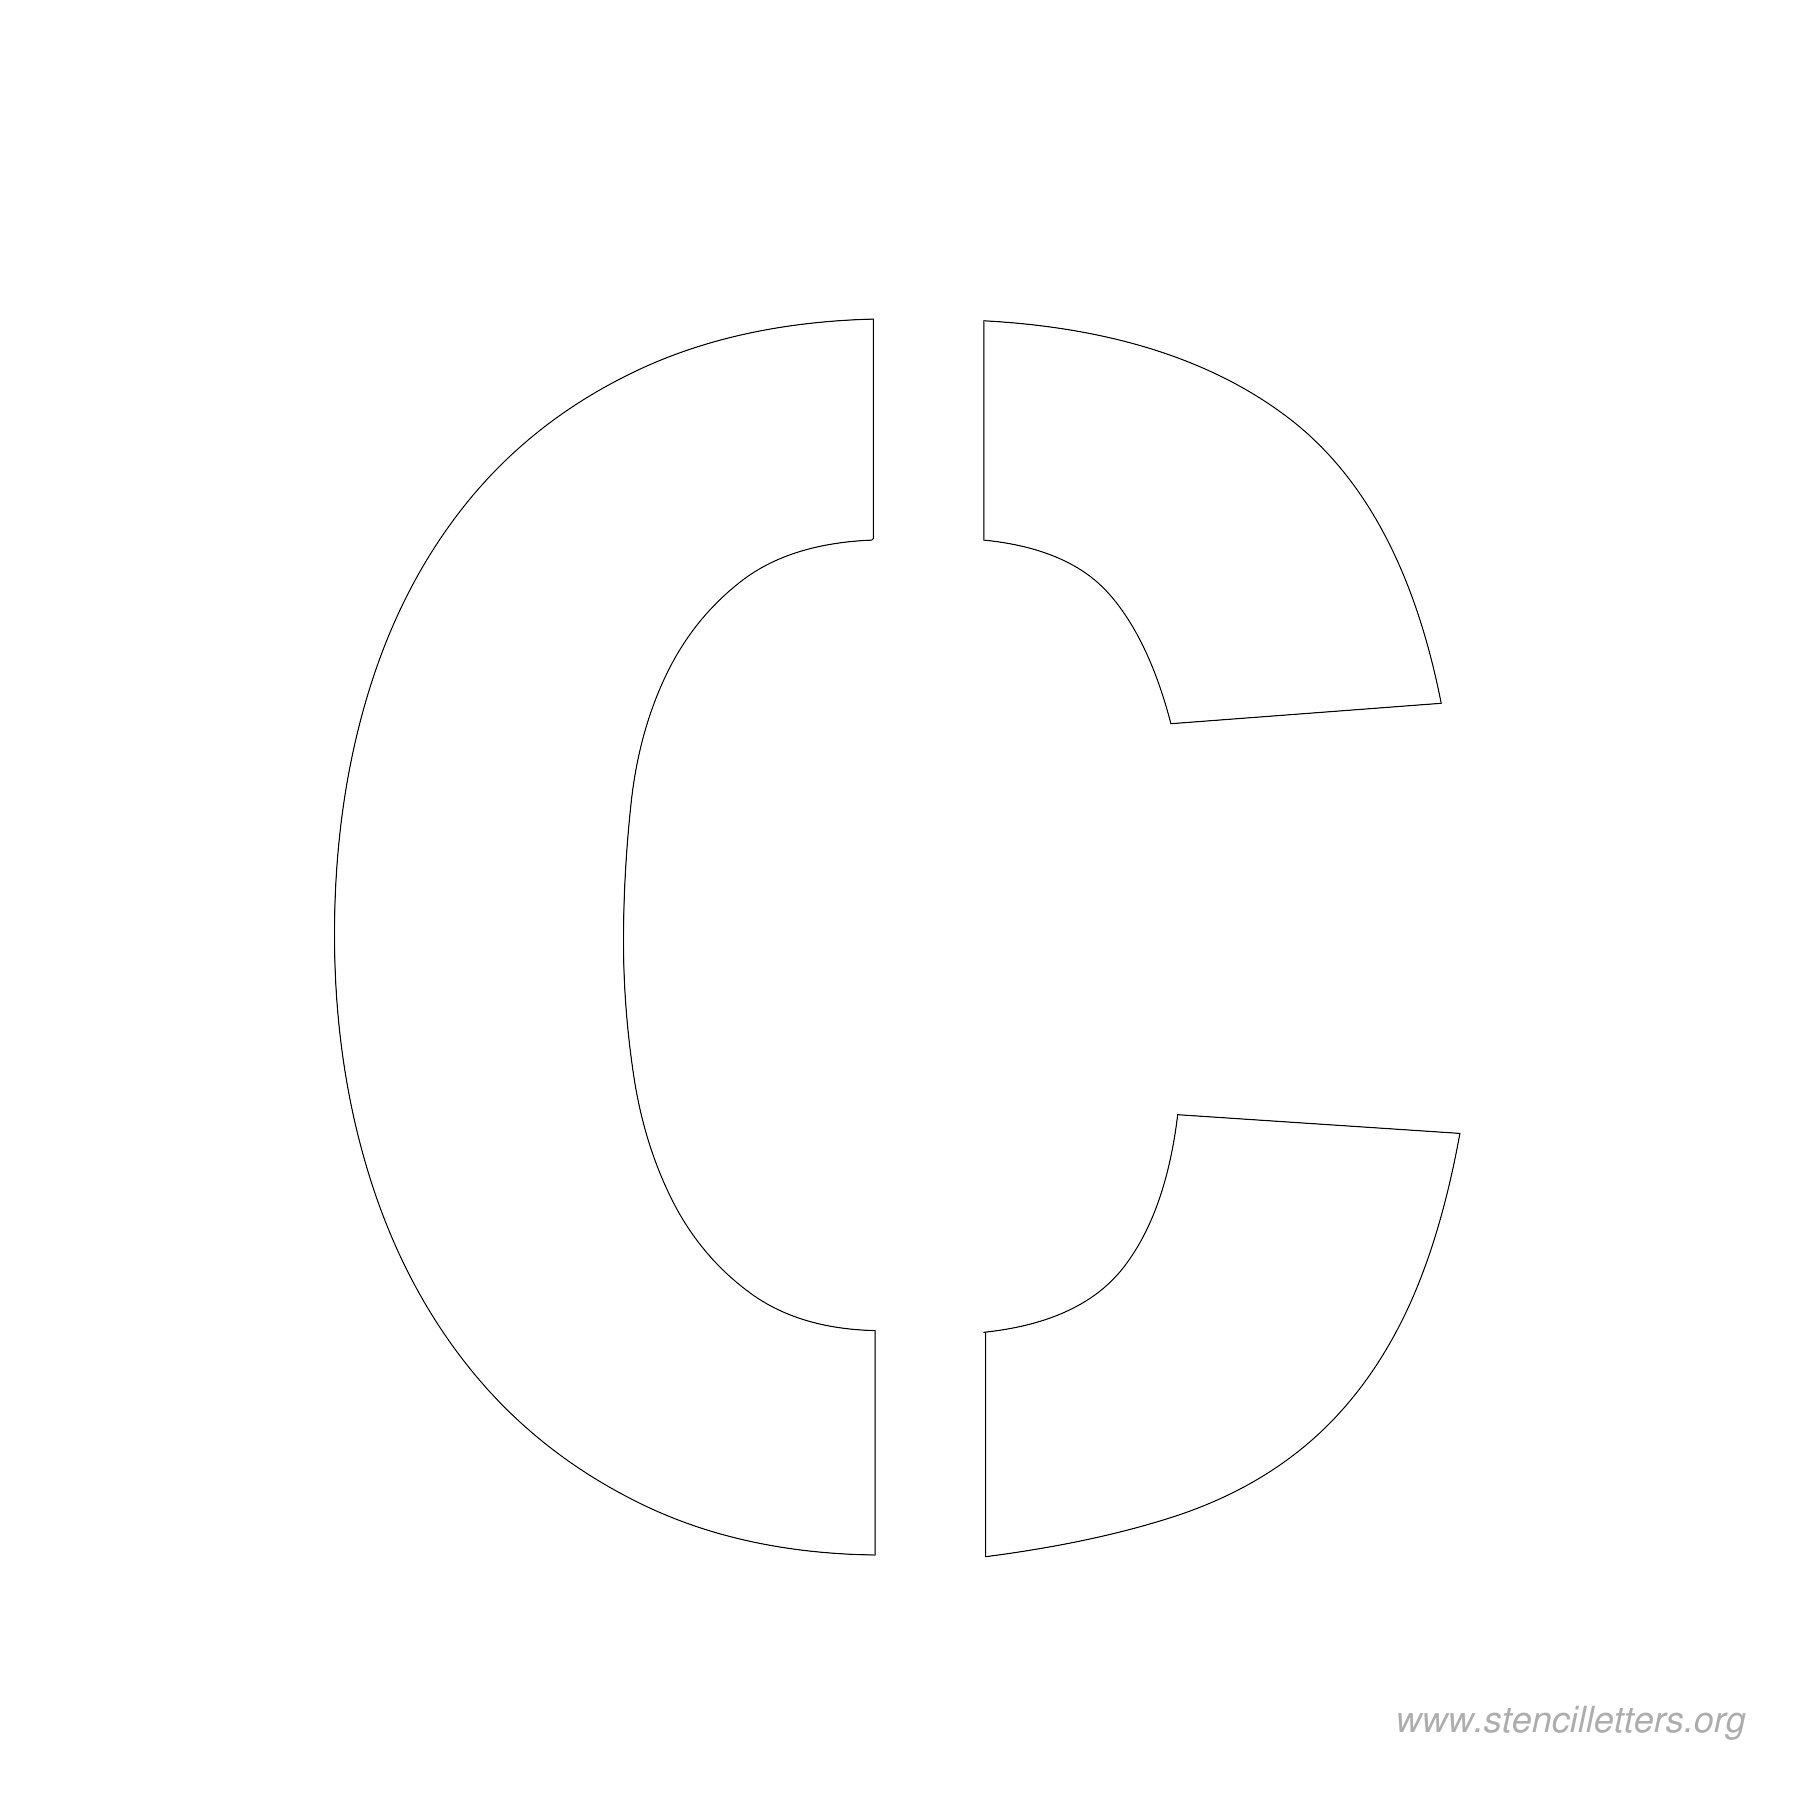 4 Inch Stencil Letters   Stencil Letters Org - Free Printable 4 Inch Block Letters